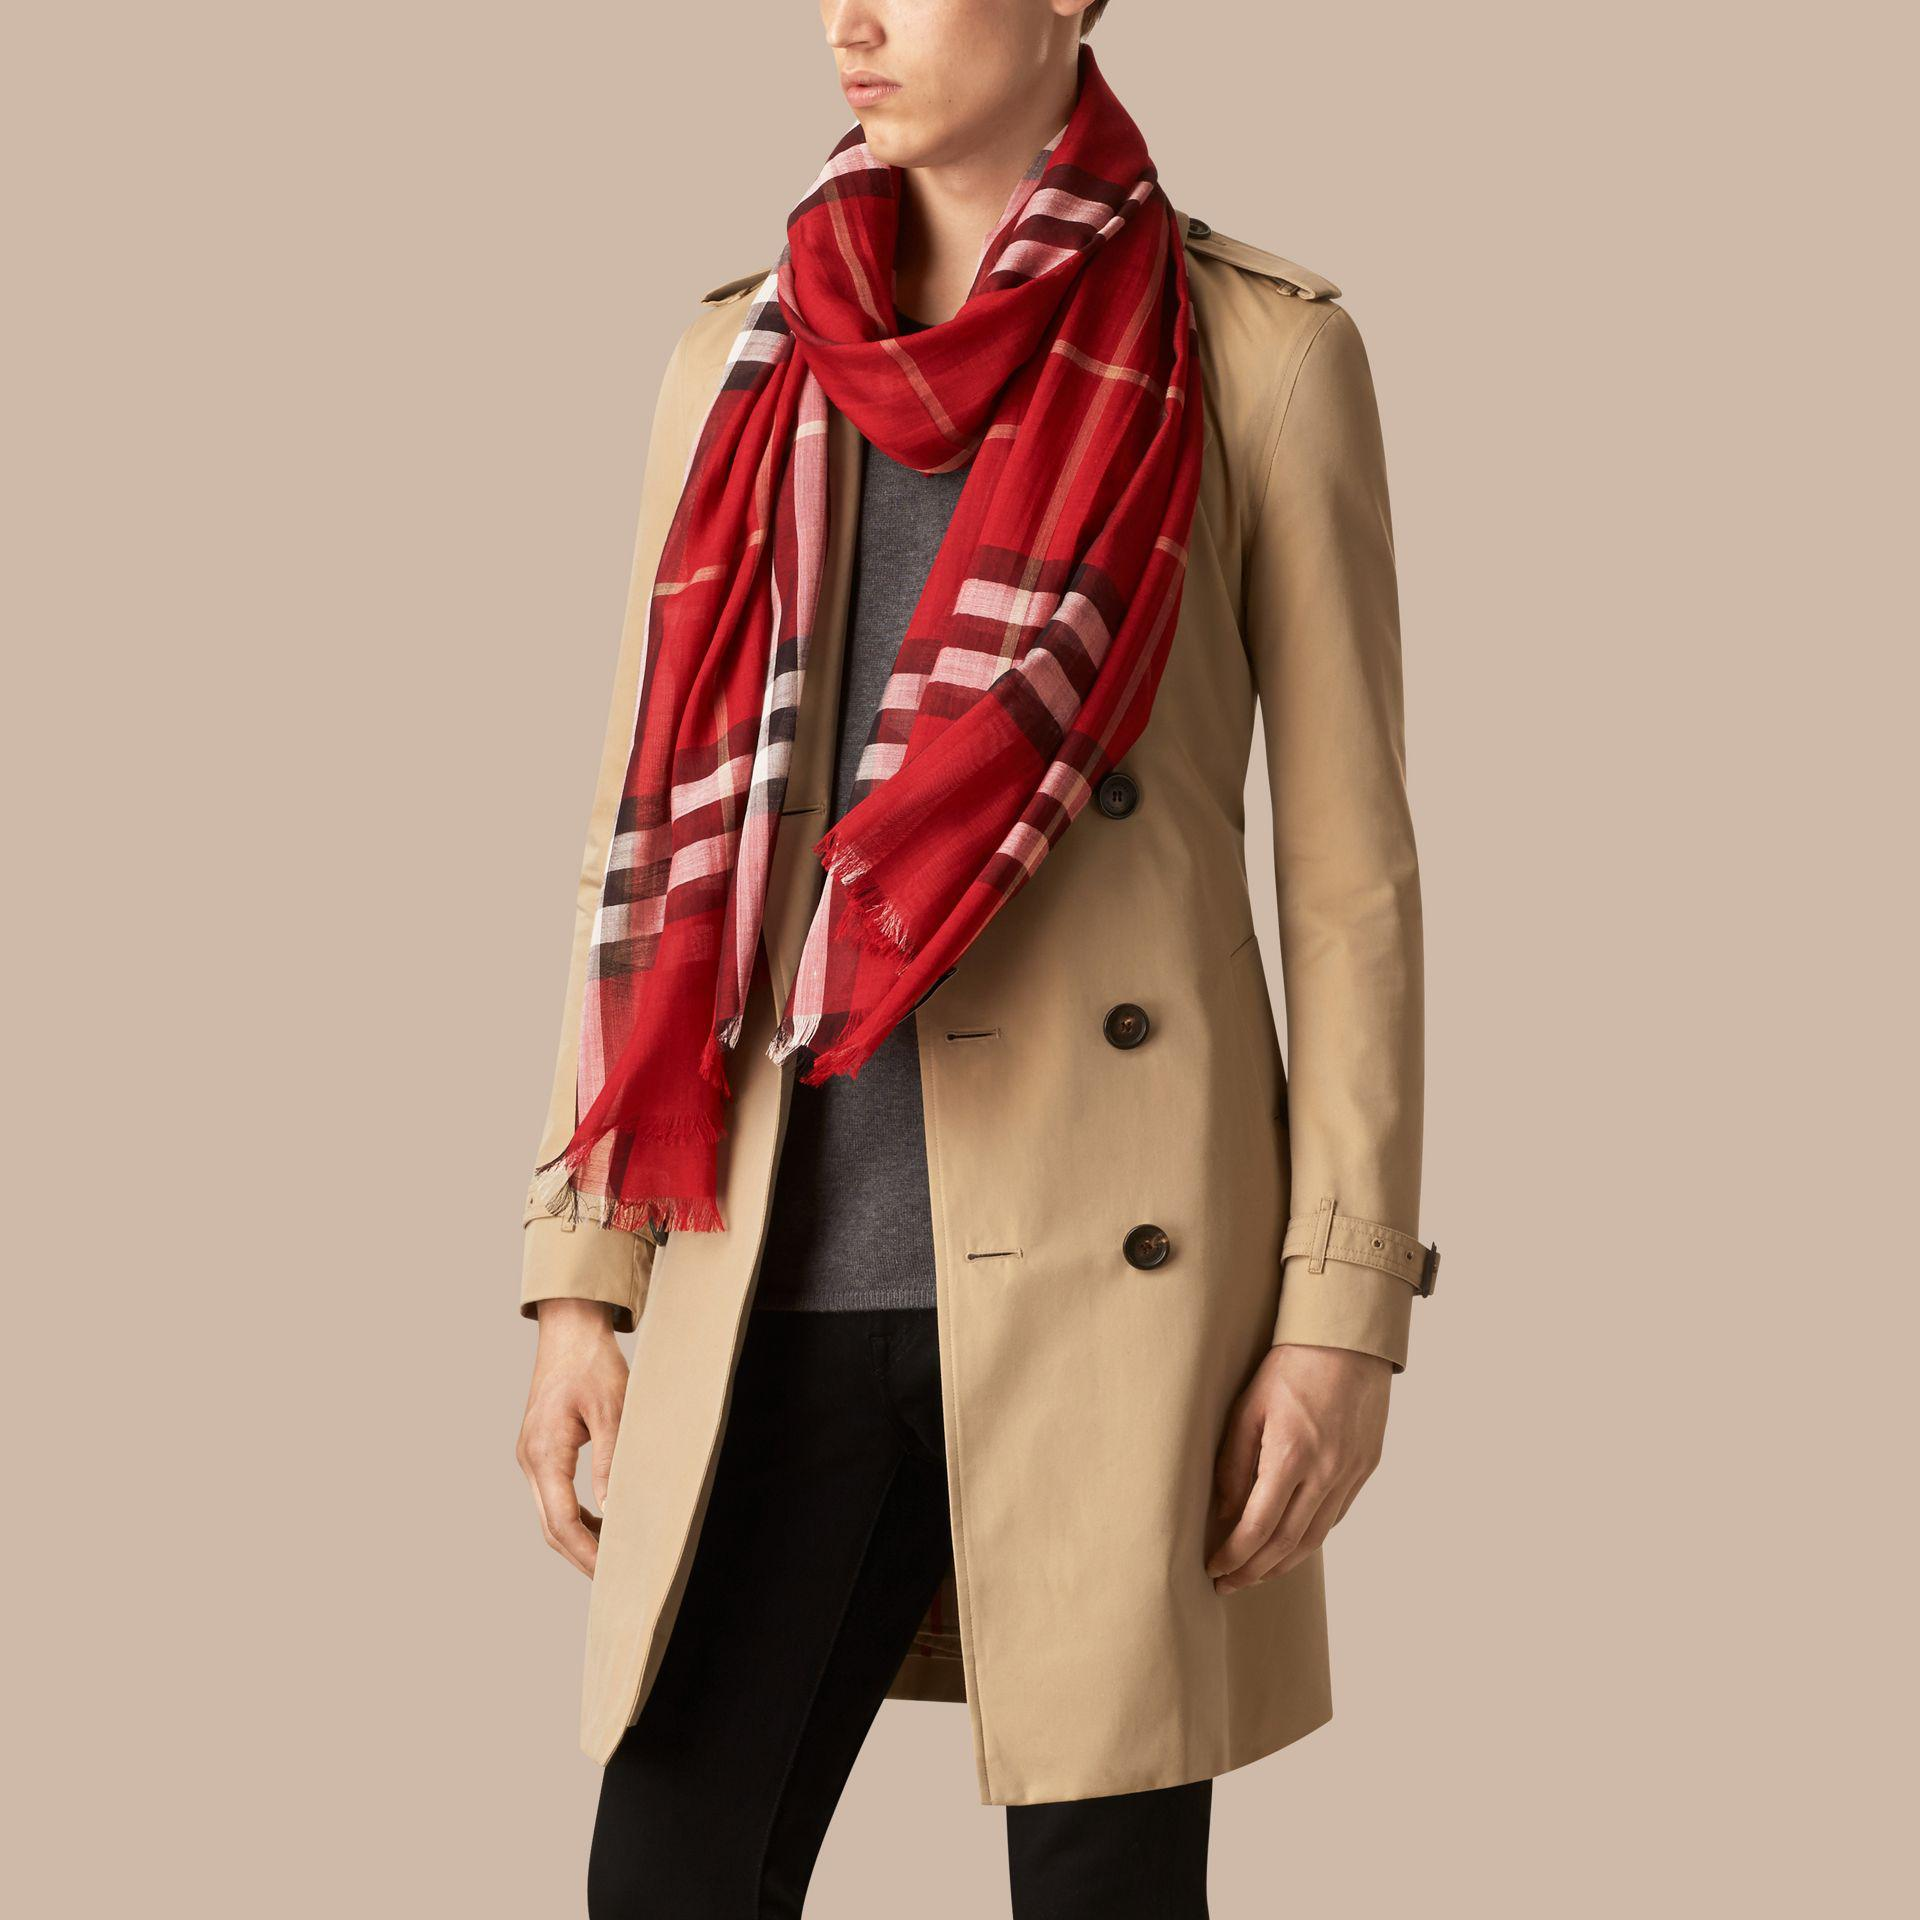 Lyst - Burberry Lightweight Check Wool And Silk Scarf Parade Red in Red 8f99821124